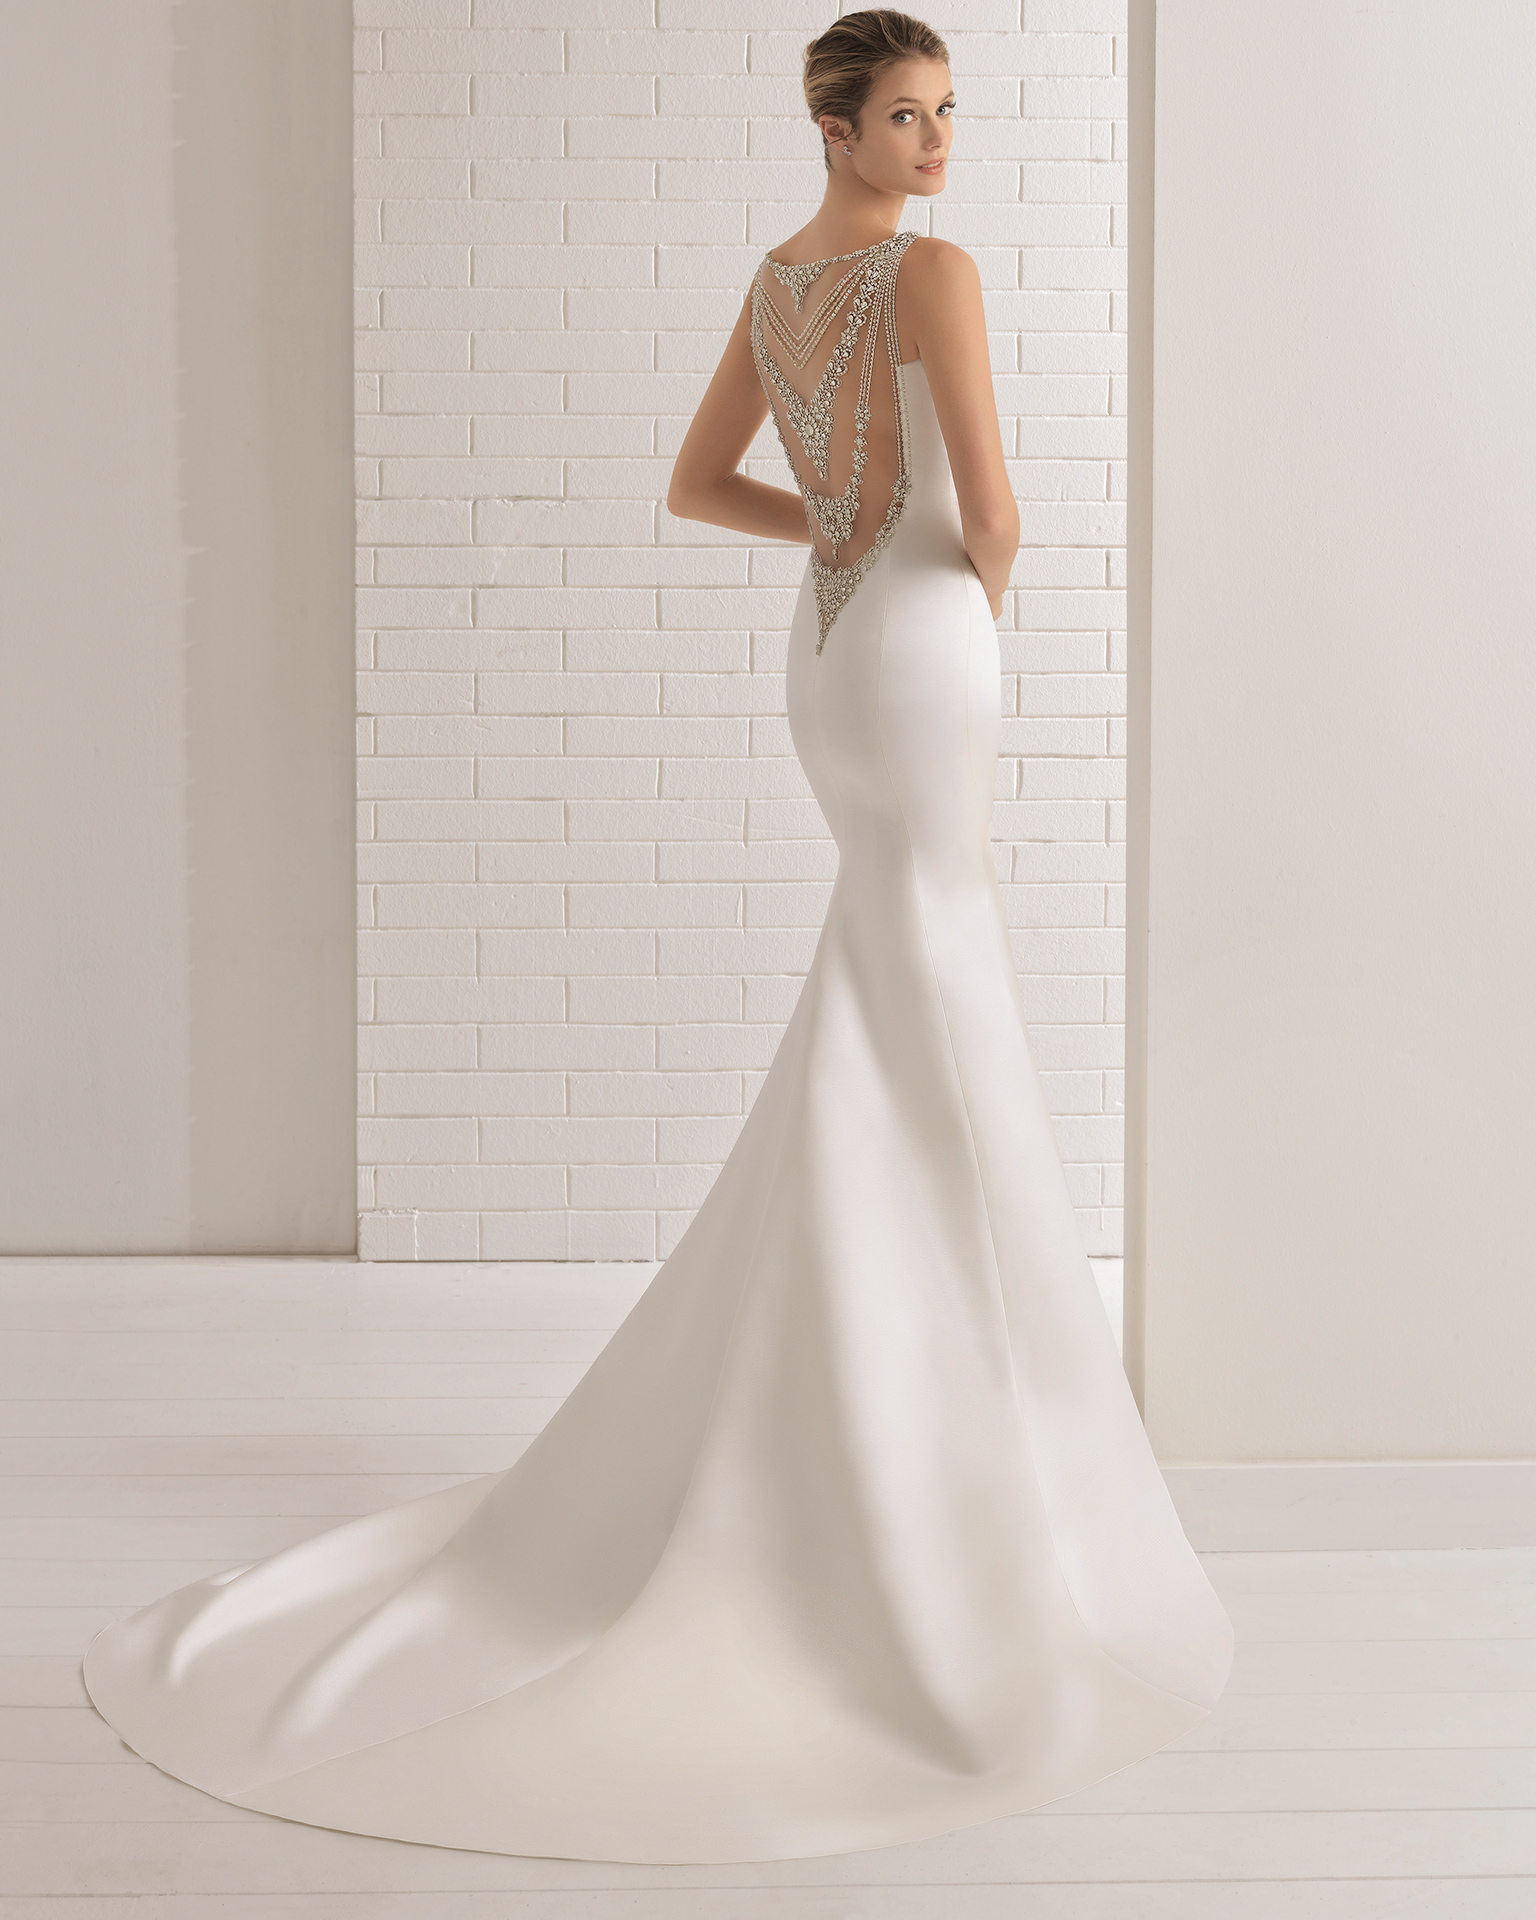 Mermaid-style duchess satin wedding dress with beaded V-neckline and jeweled back, in ivory.